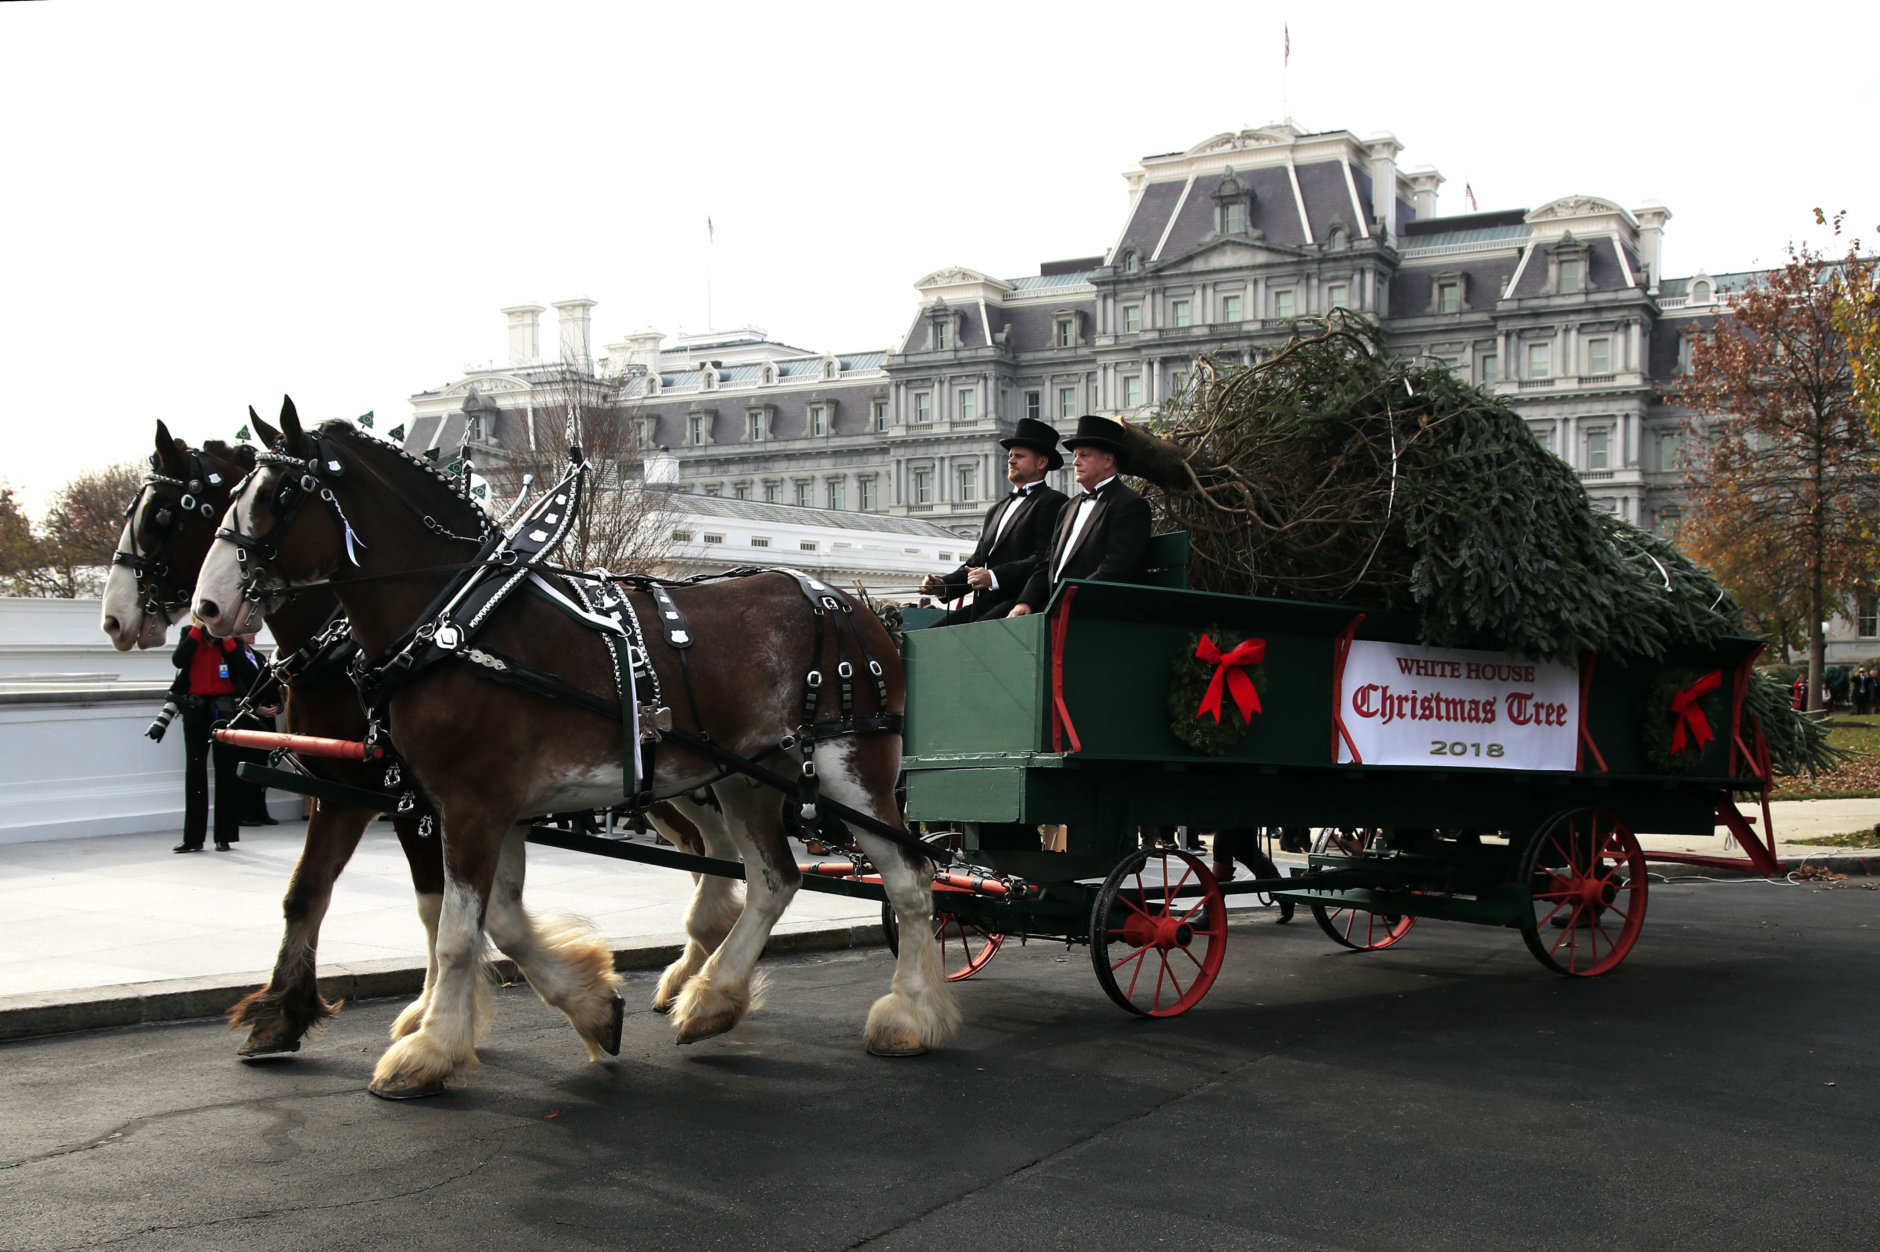 The White House Christmas Tree, presented to President Donald Trump and first lady Melania Trump by the Smith family of the Mountain Top Fraser Fir farm in Newland, N.C., arrives on a horse-drawn carriage on the North Lawn driveway of the White House, in Washington, Monday, Nov. 19, 2018. The North Carolina-grown 19 1/2-foot-tall Fraser Fir will be displayed in the Blue Room of the White House. (AP Photo/Manuel Balce Ceneta)